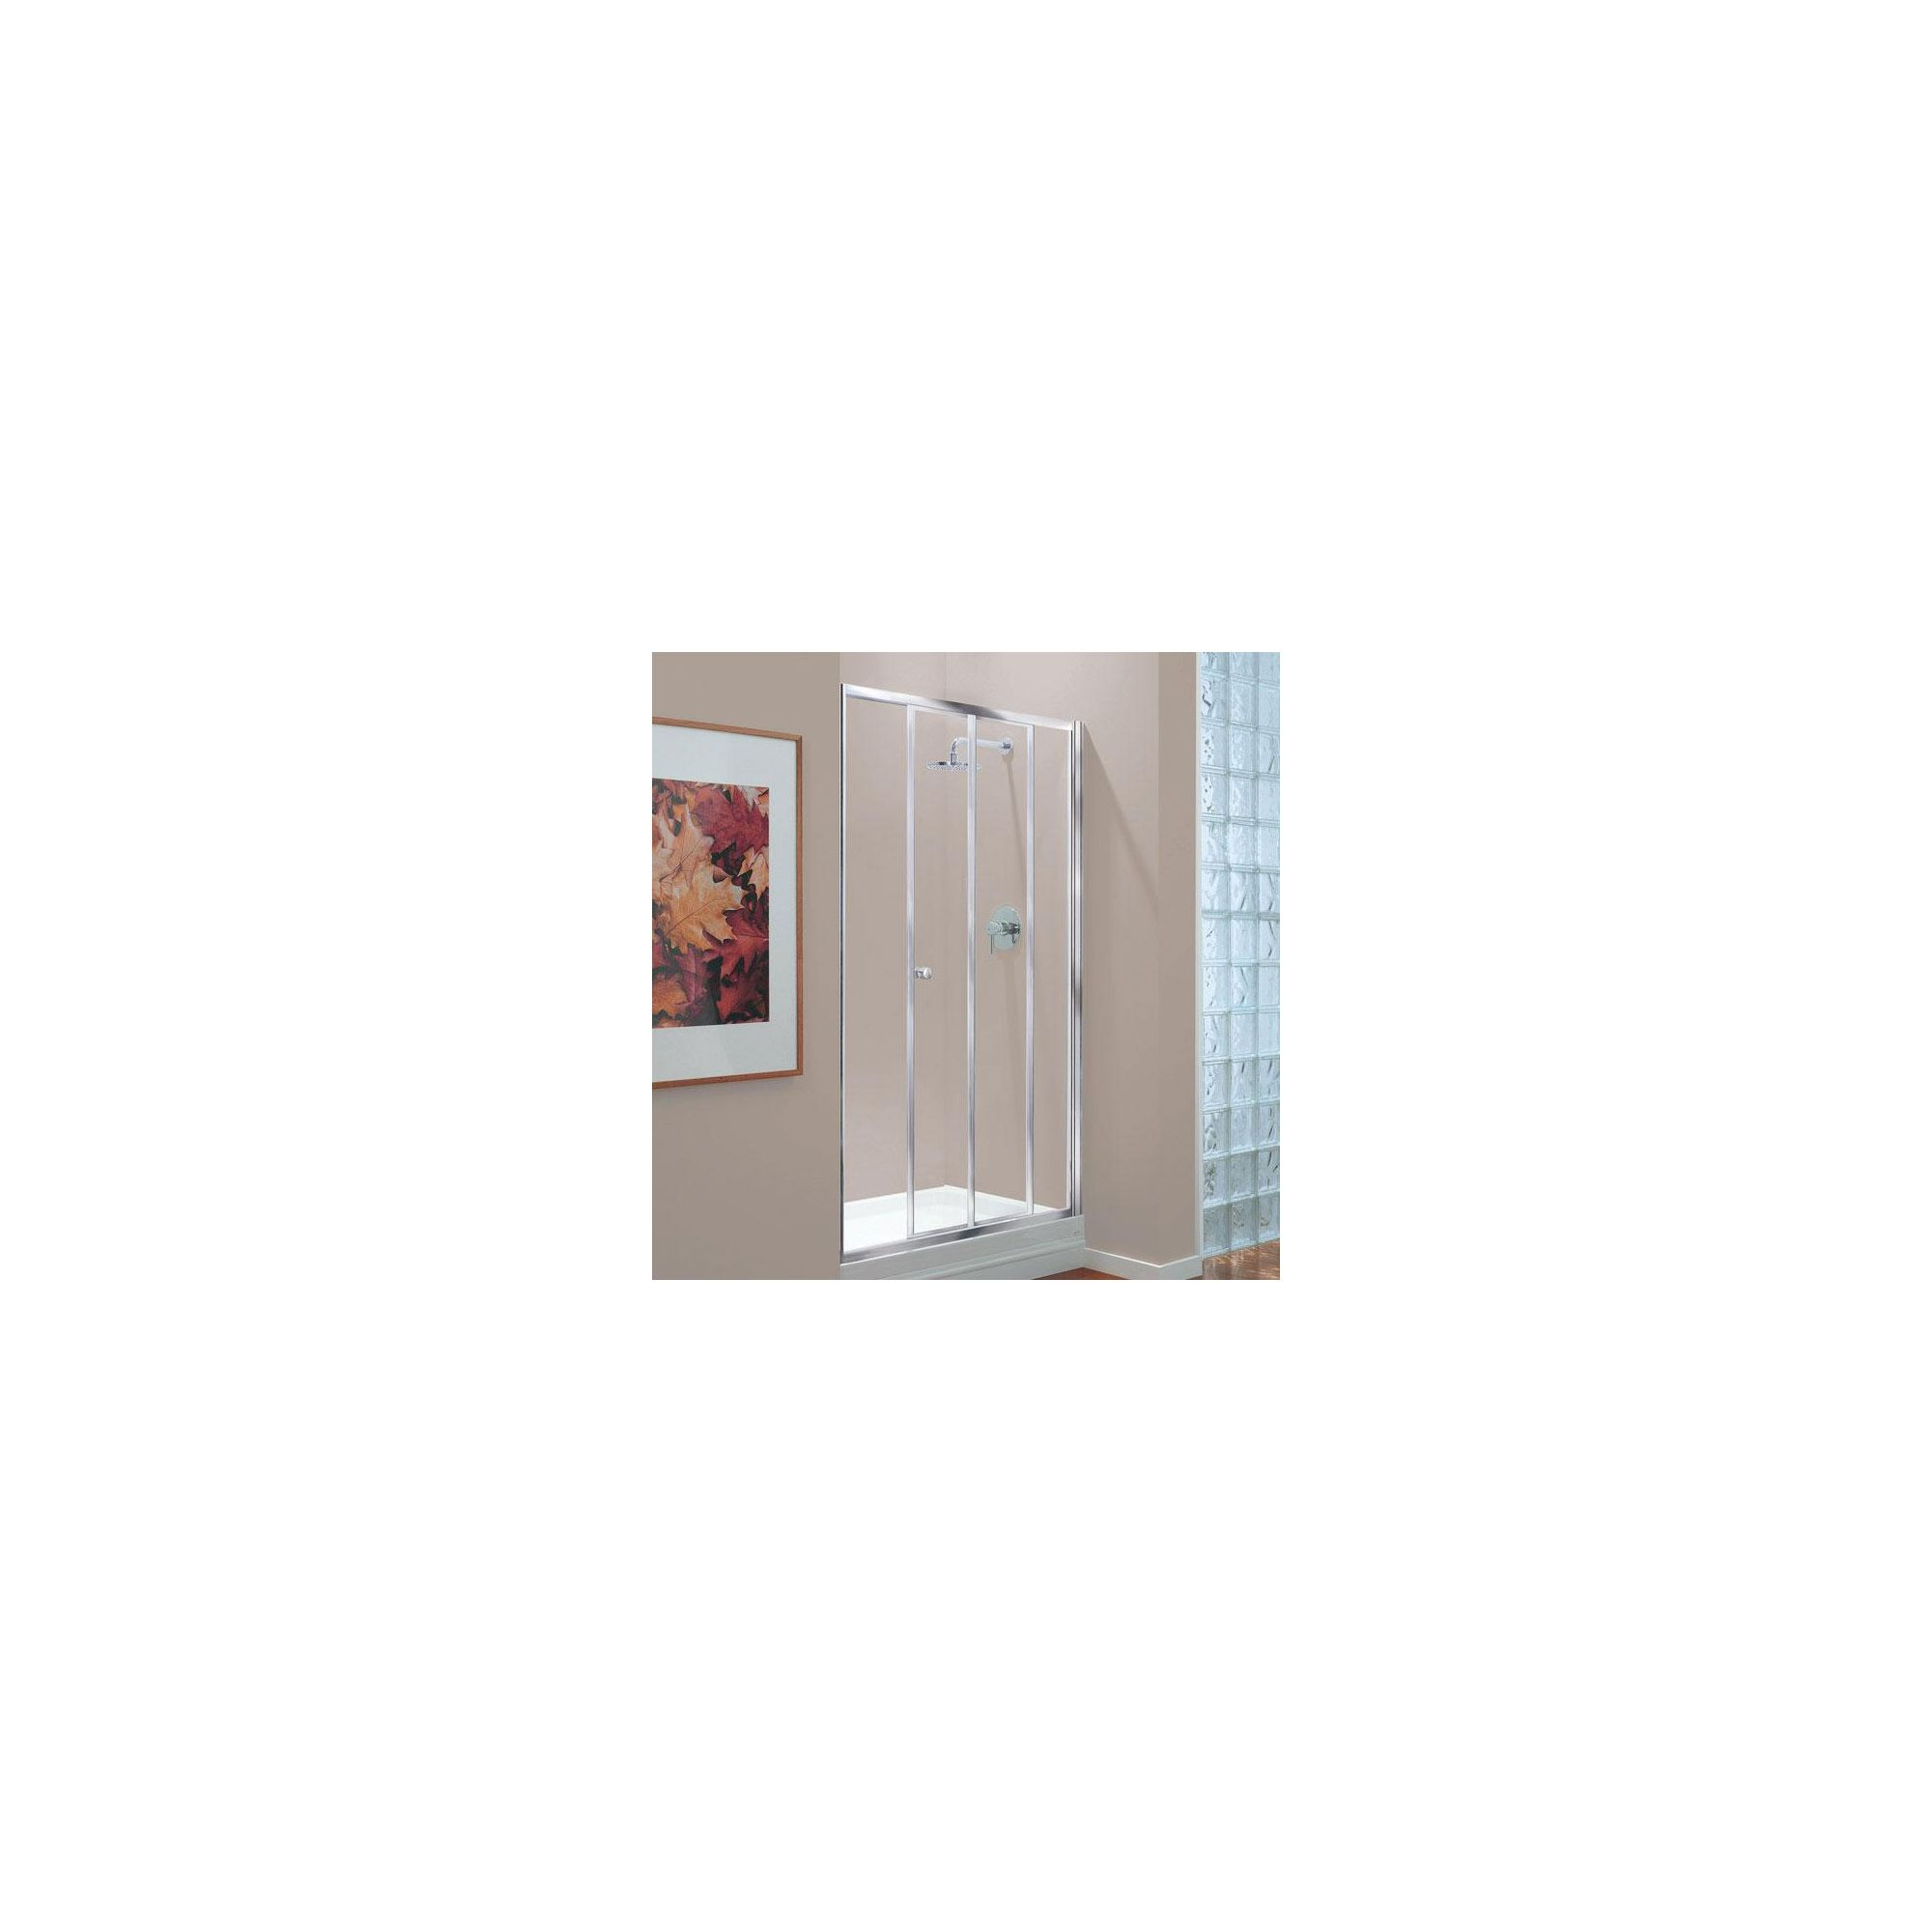 Coram GB Sliding Door Shower Enclosure, 1200mm x 760mm, Standard Tray, 4mm Glass, Chrome Frame at Tescos Direct